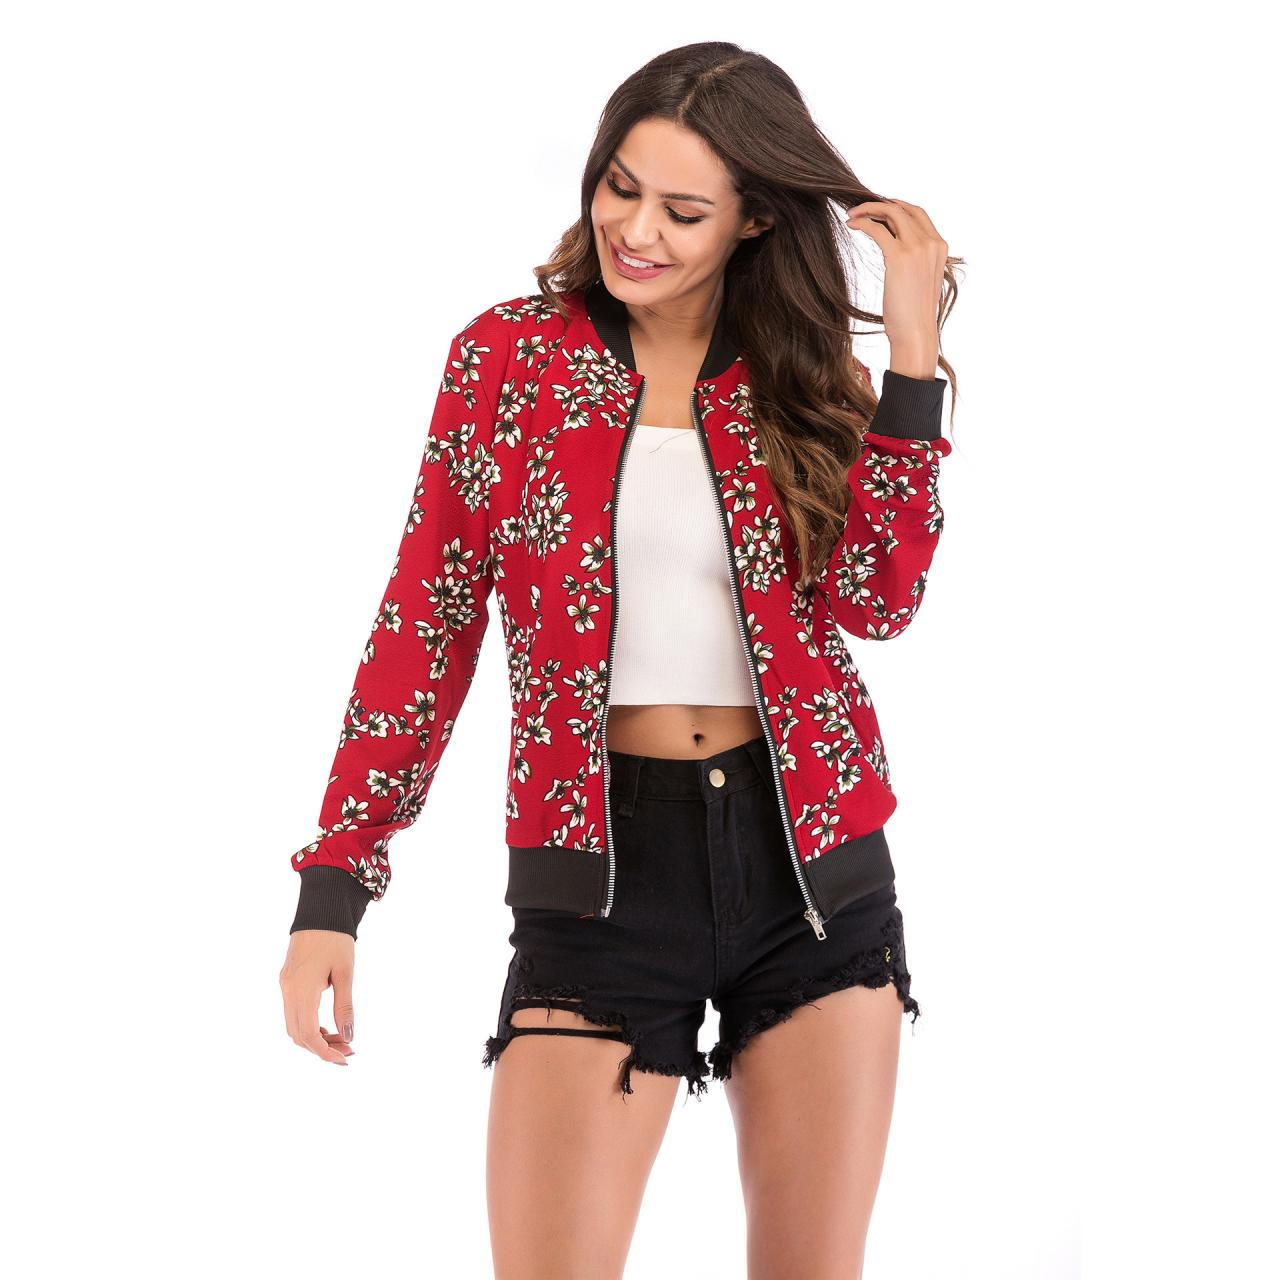 Women Baseball Uniform Coat Crane/Floral/Striped Printed Autumn Long Sleeve Zipper Casual Slim Jacket Outerwear 9#